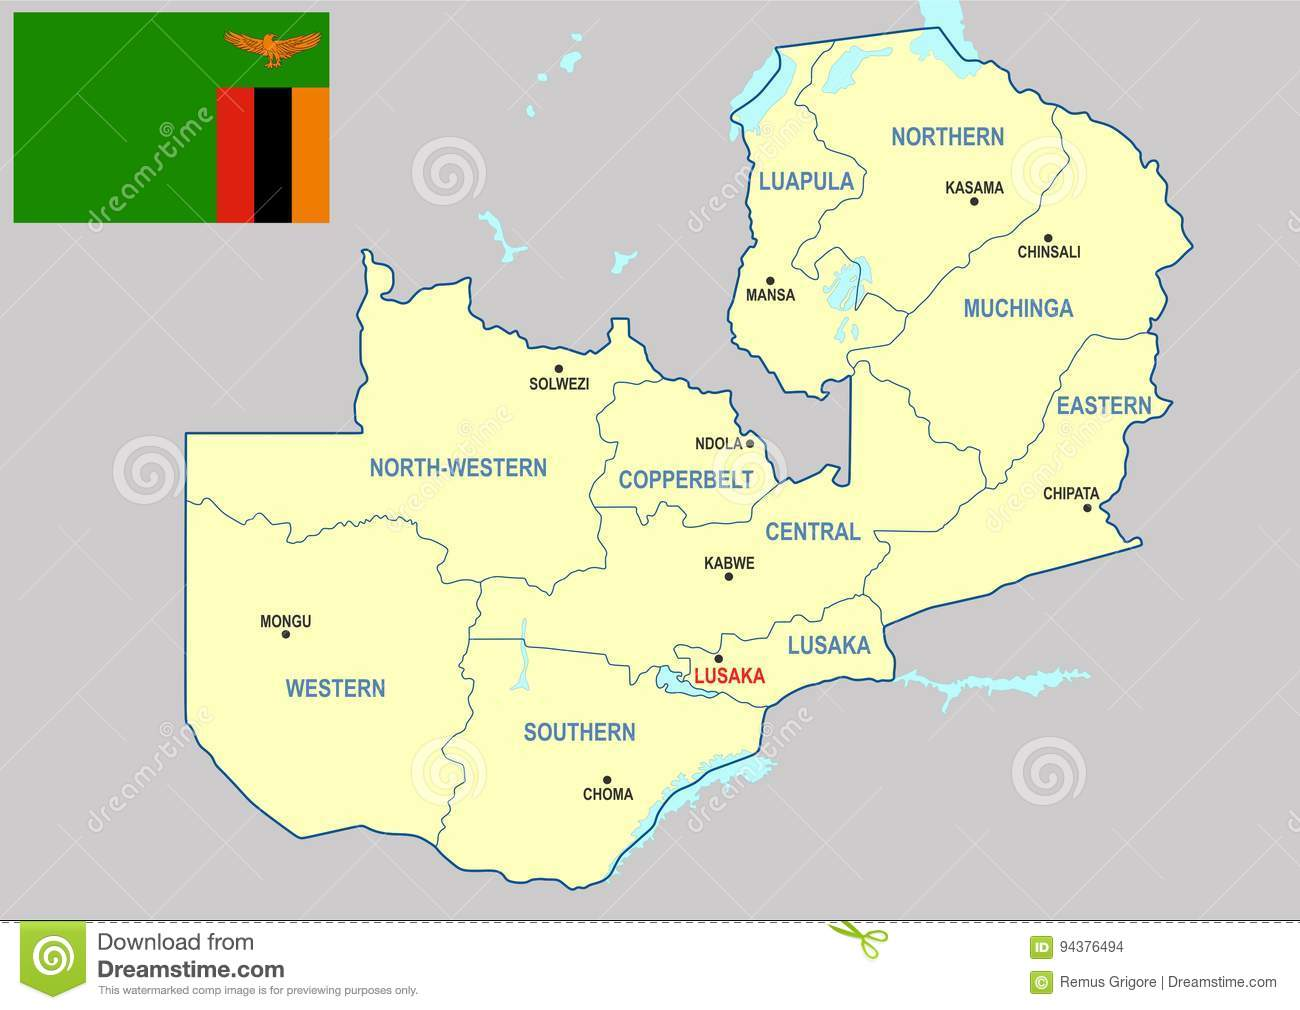 Map Of Zambia Showing Provinces.Zambia Map Cdr Format Stock Vector Illustration Of Africa